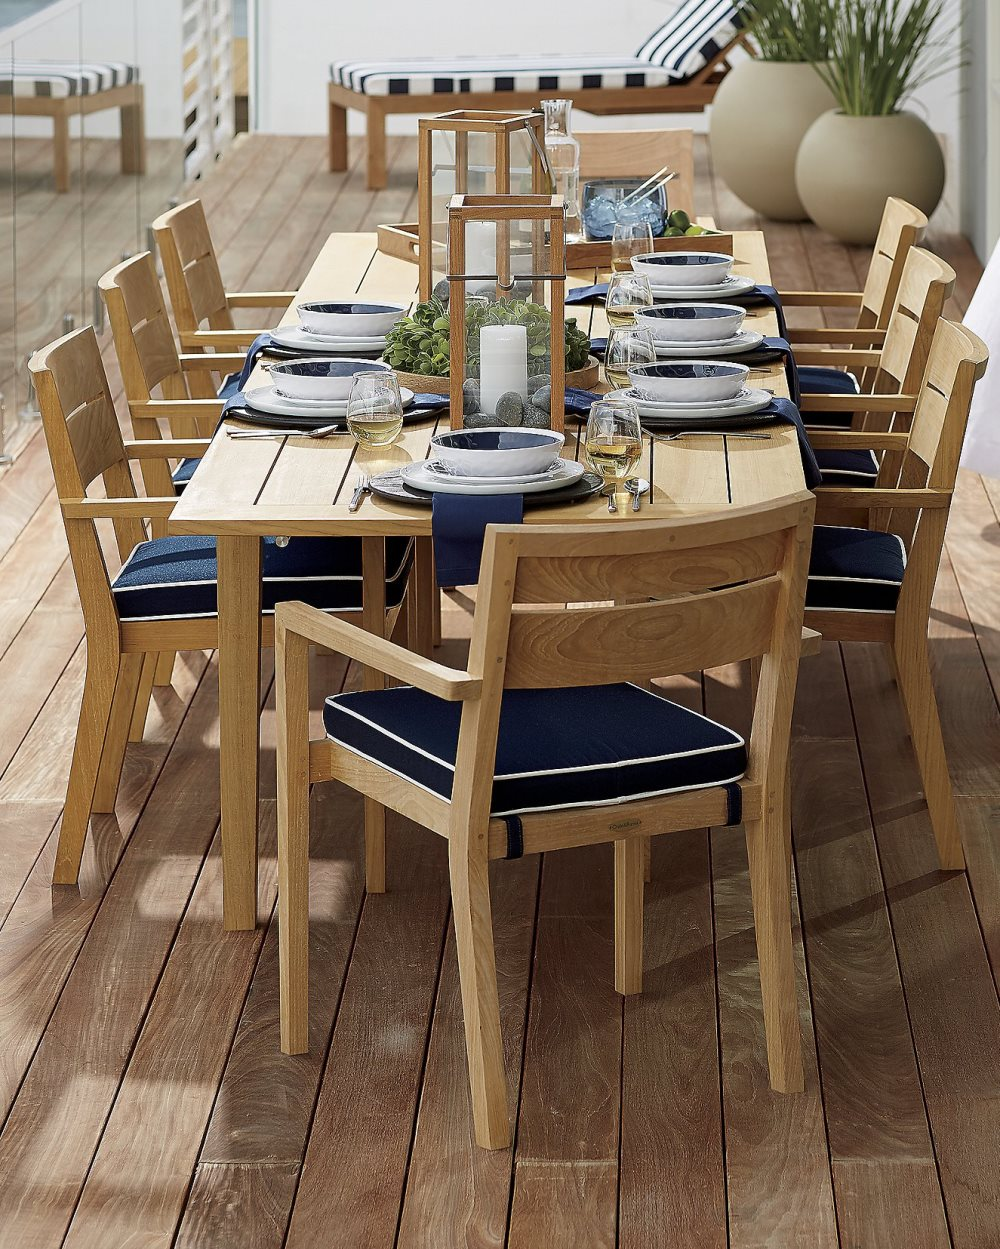 Blue and white dinnerware from Crate & Barrel